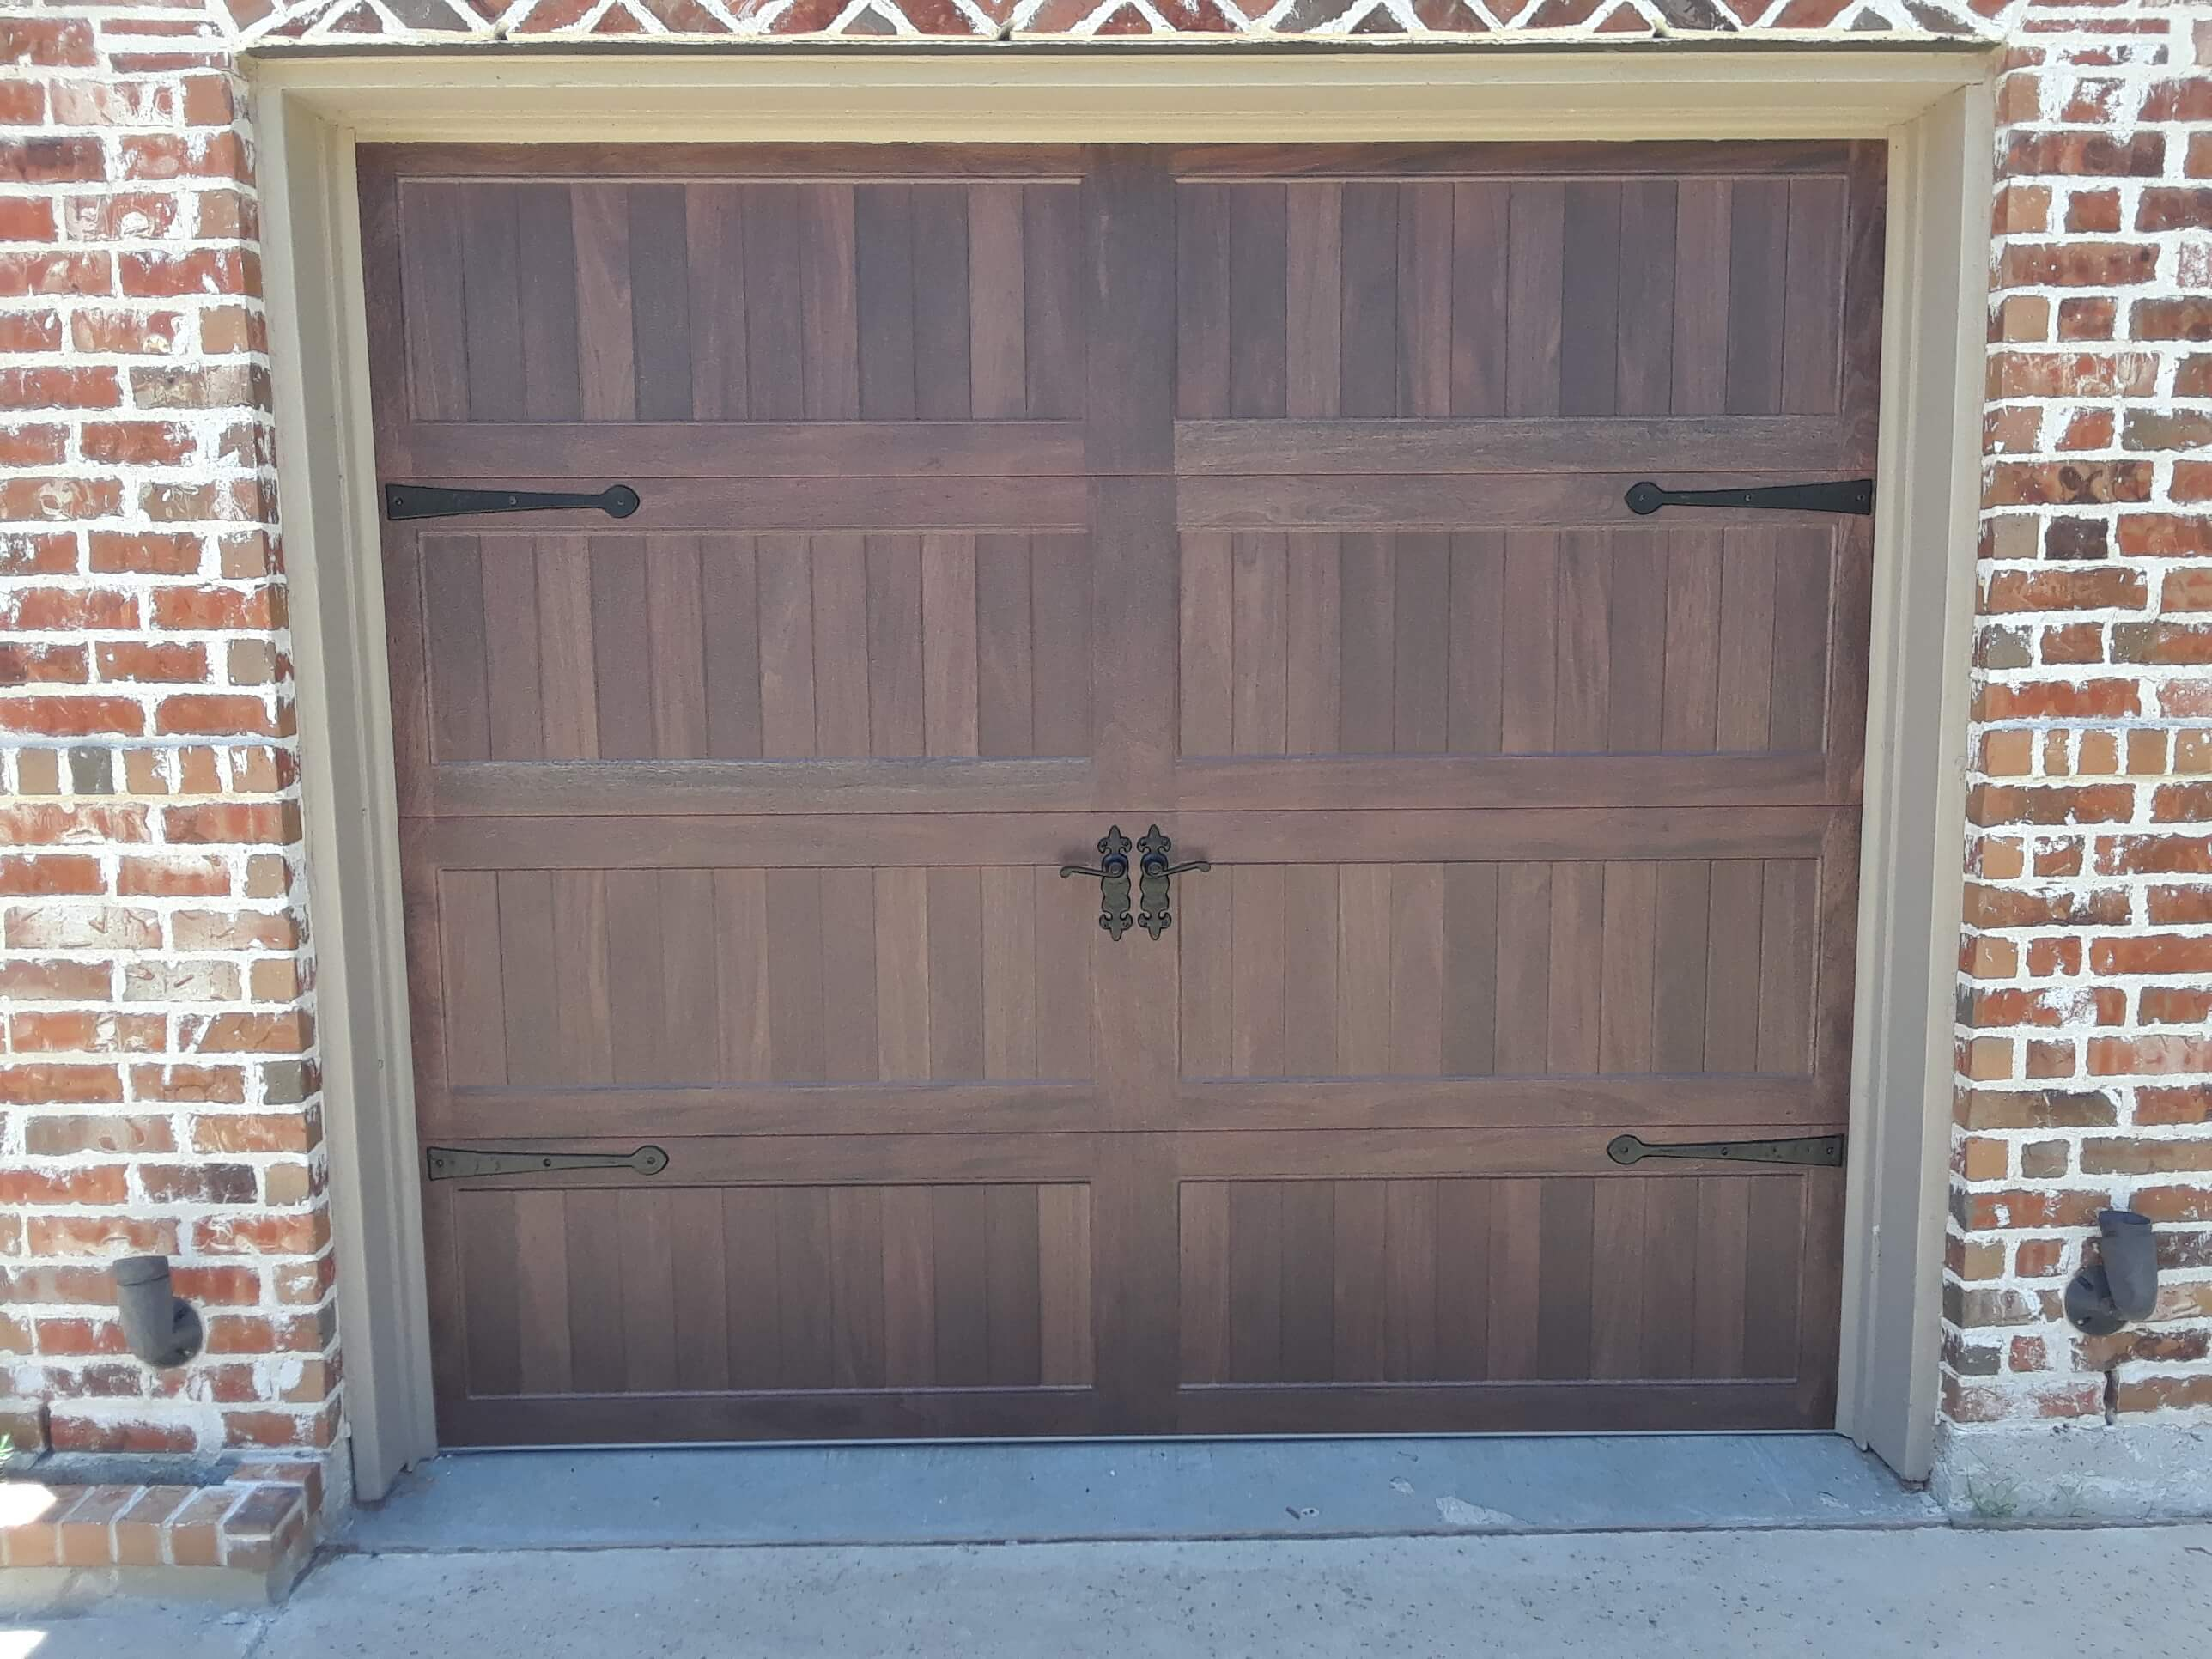 CHI 5493 Mahogany Accents with Wrought Iron Hardware